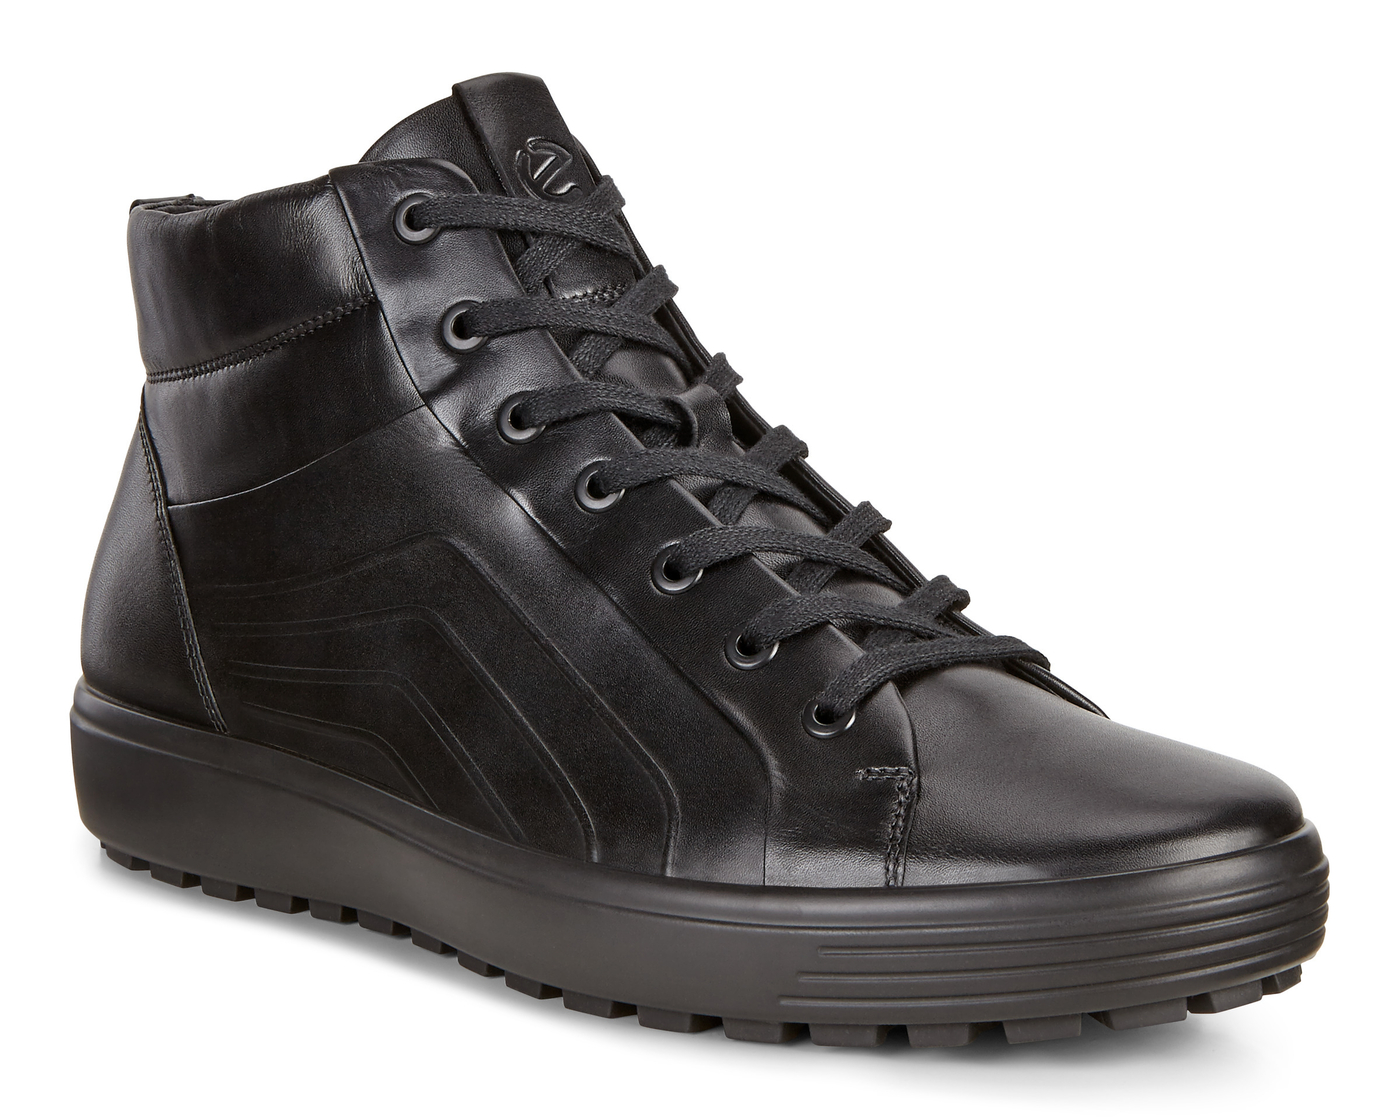 ECCO SOFT7 TRED Mens Mid Cut Sneaker Lace